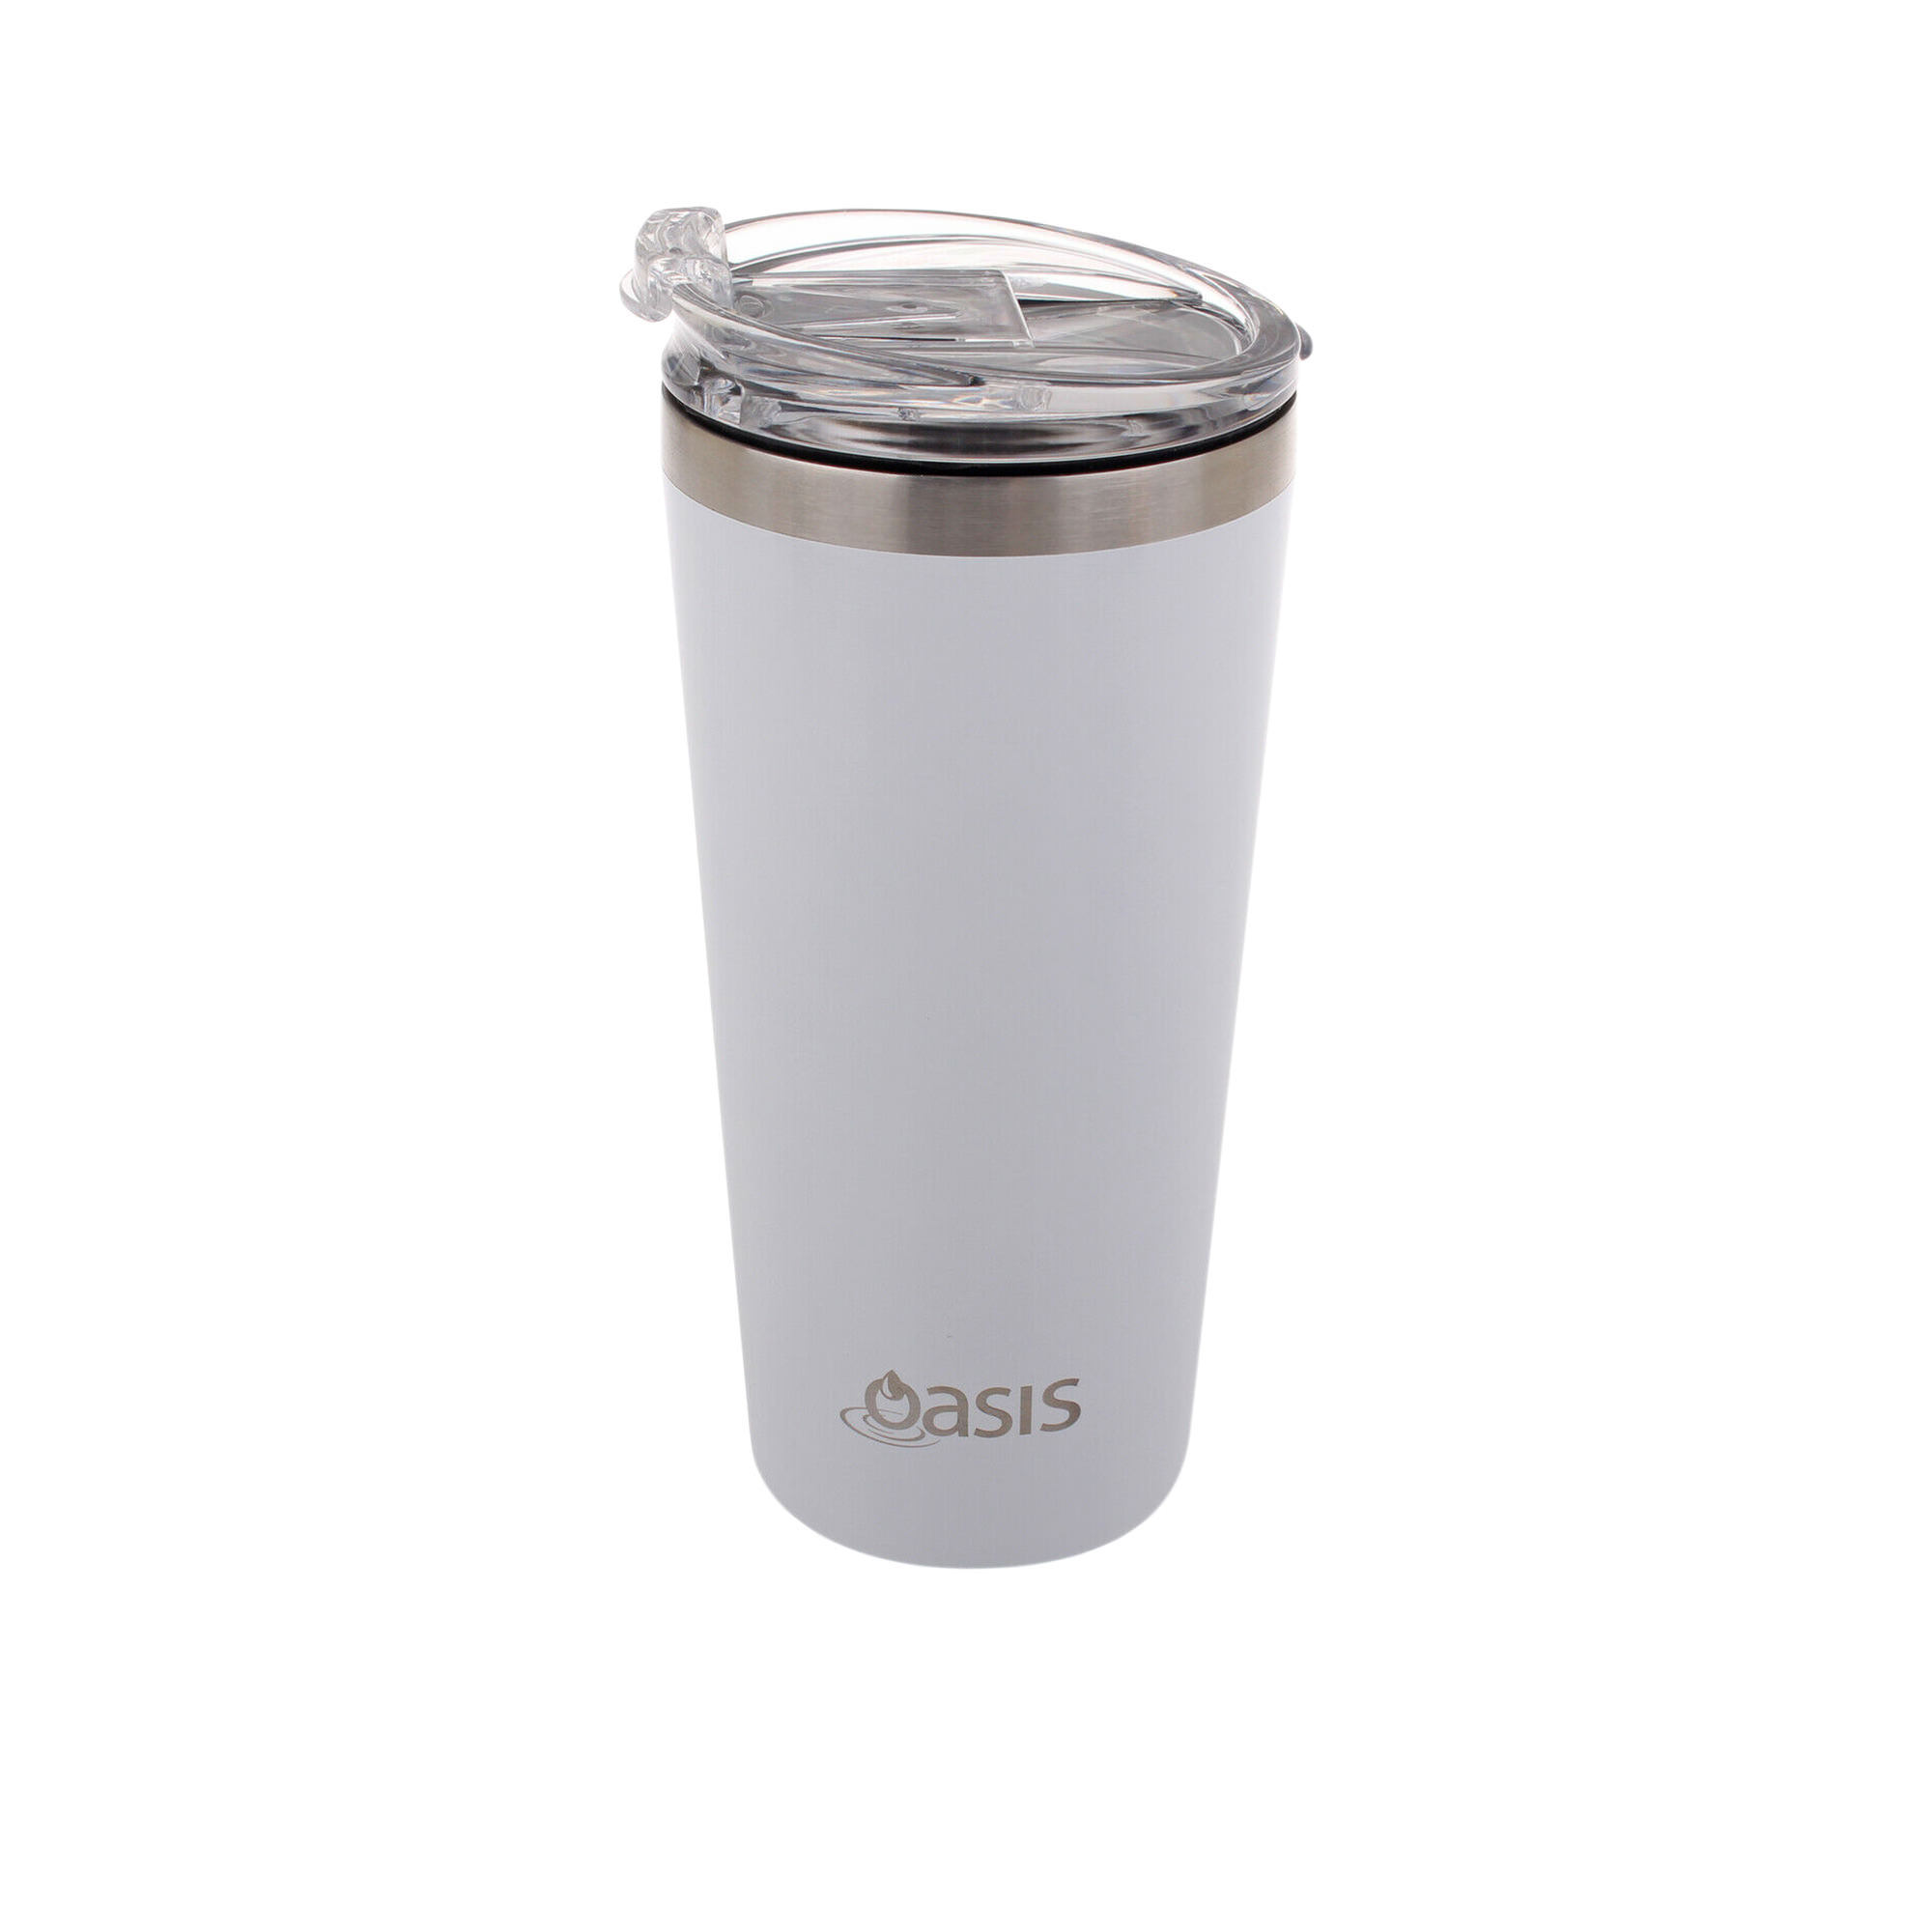 Oasis Double Wall Insulated Travel Mug 480ml White